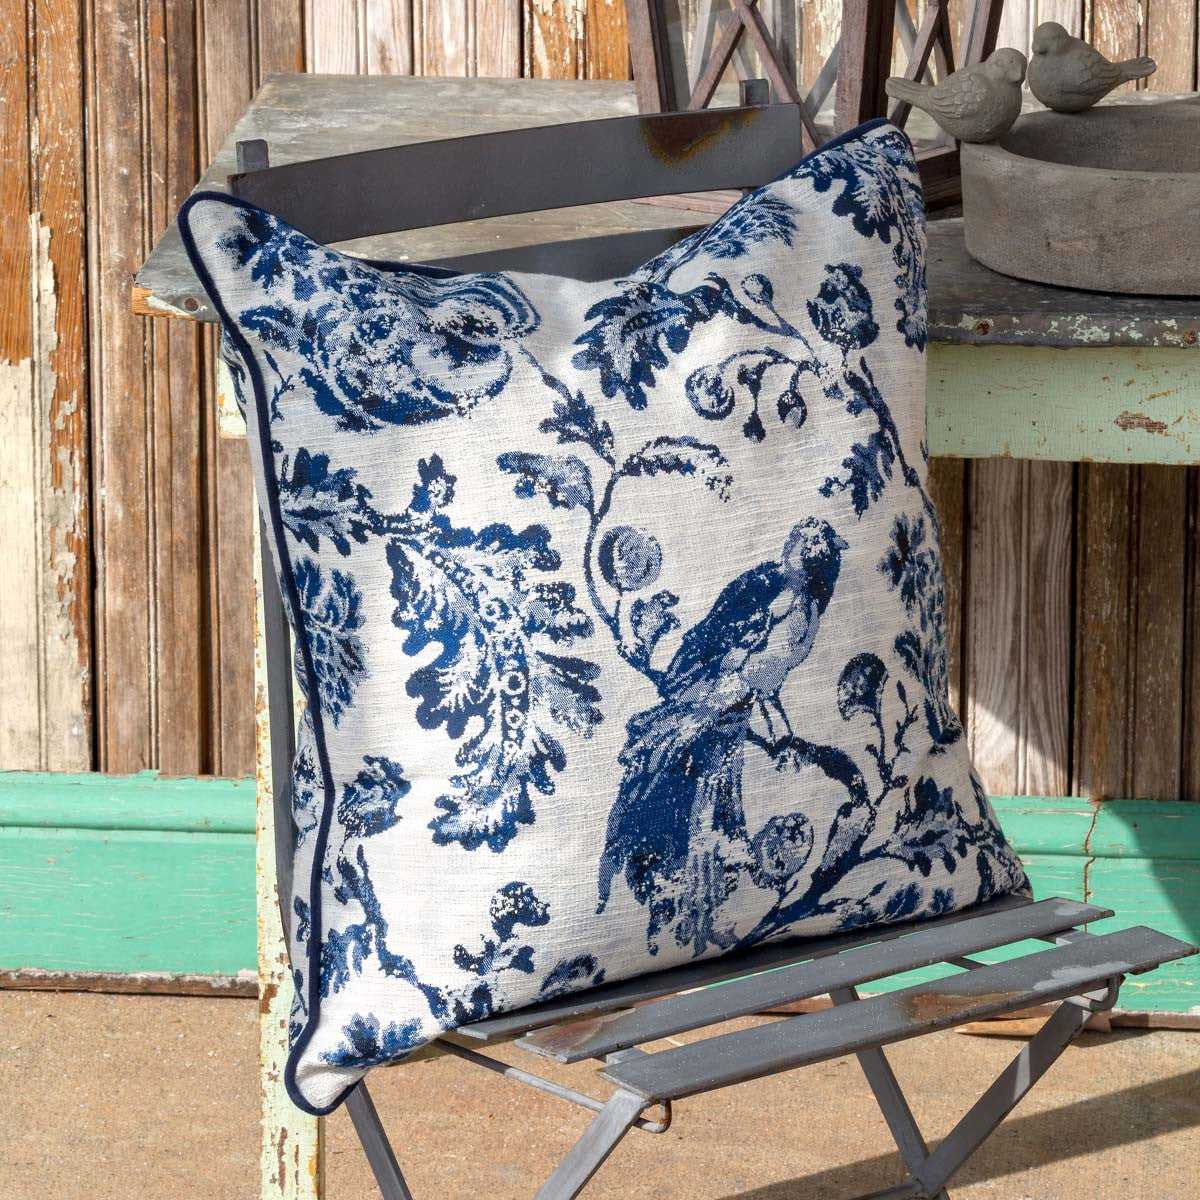 Blue Down Filled Bird Toile Pillow - Colonial House of Flowers | bespoke floral design + online shop | Atlanta, Georgia